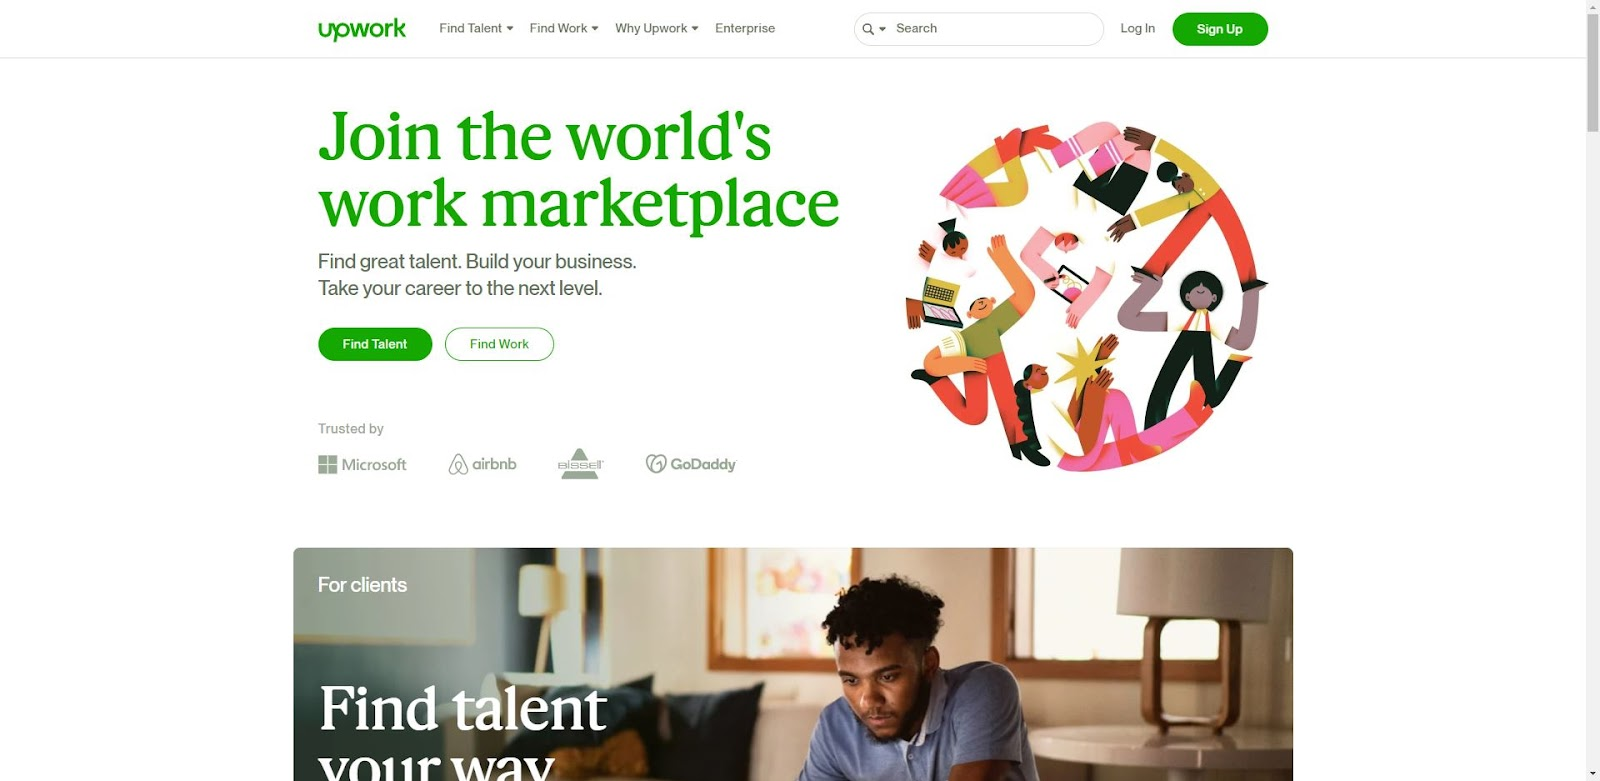 This is the Upwork website home page. This is the world's largest freelance marketplace.